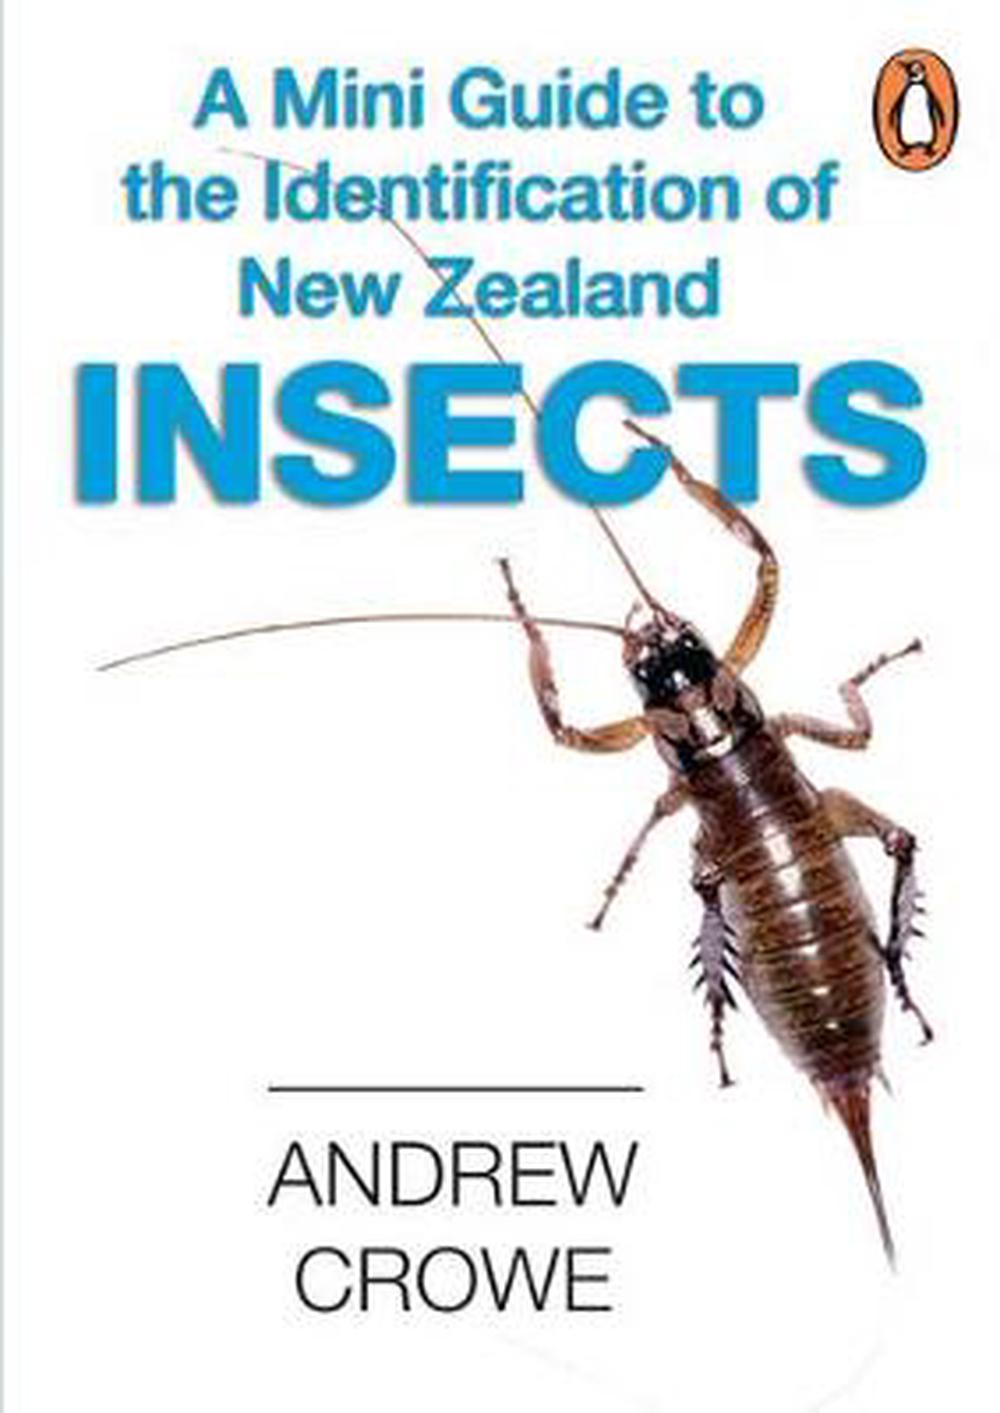 Mini Guide to Insects